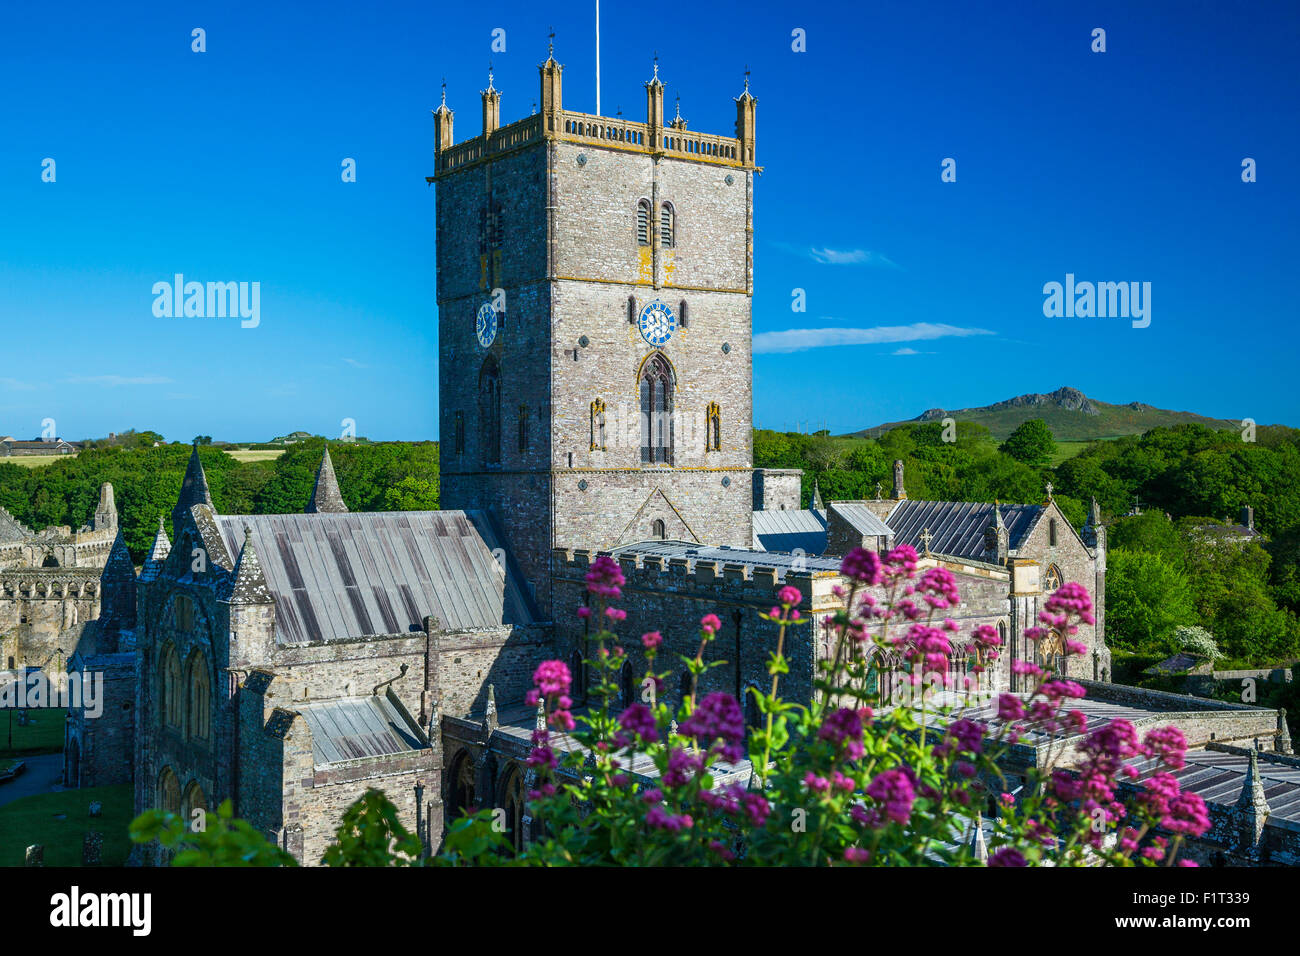 St. Davids Cathedral, Pembrokeshire, Wales, United Kingdom, Europe - Stock Image